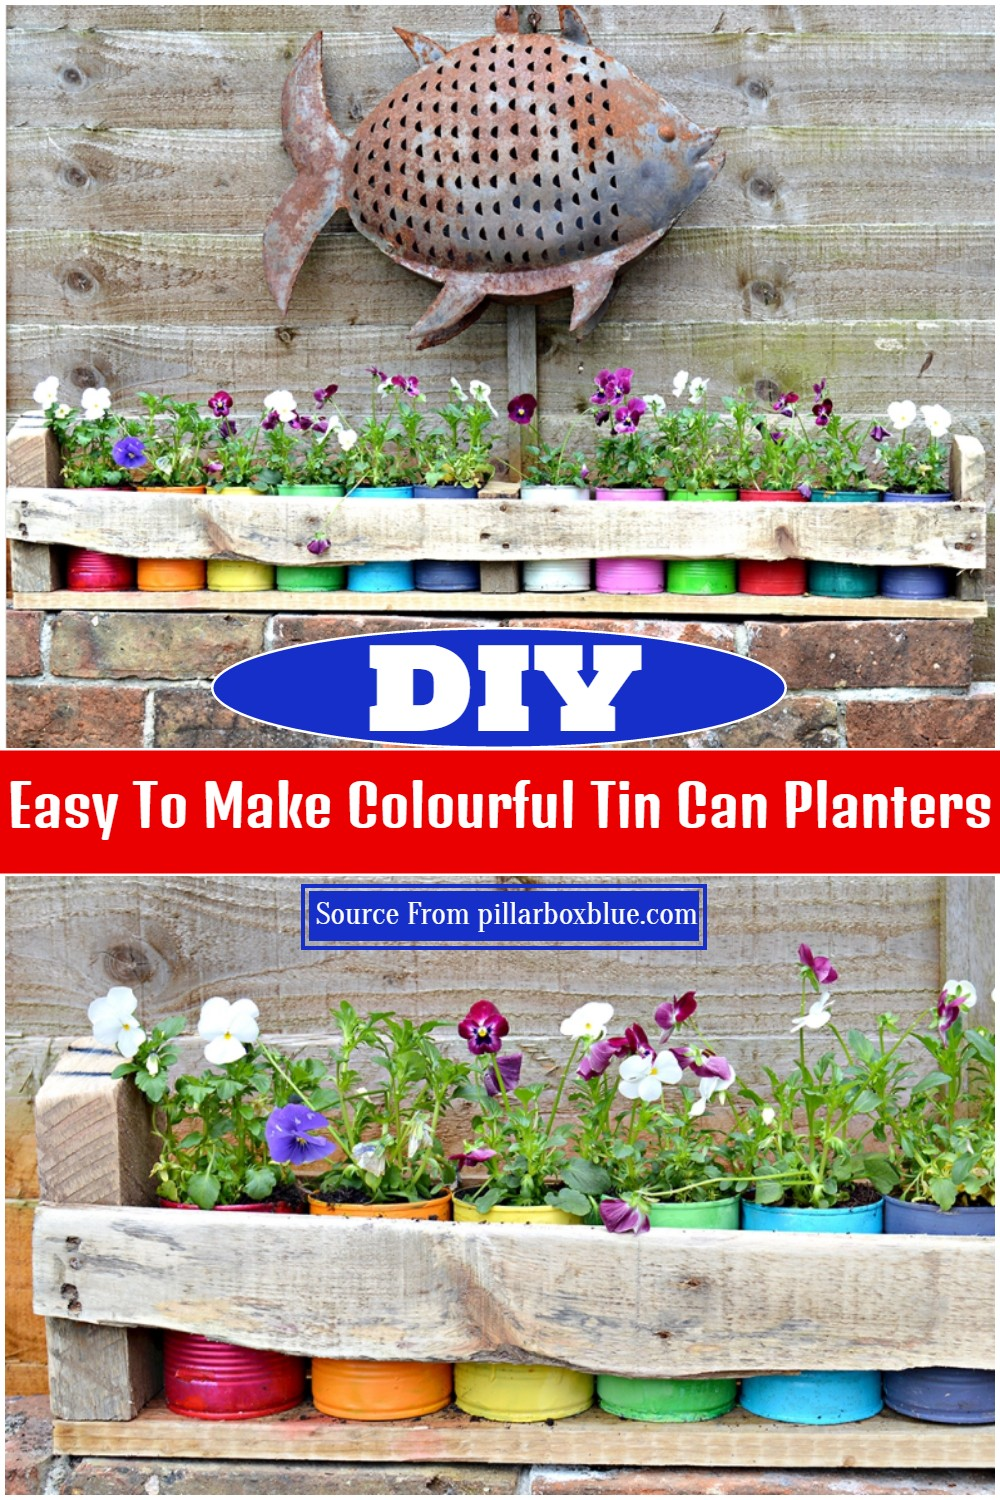 DIY Easy To Make Colourful Tin Can Planters